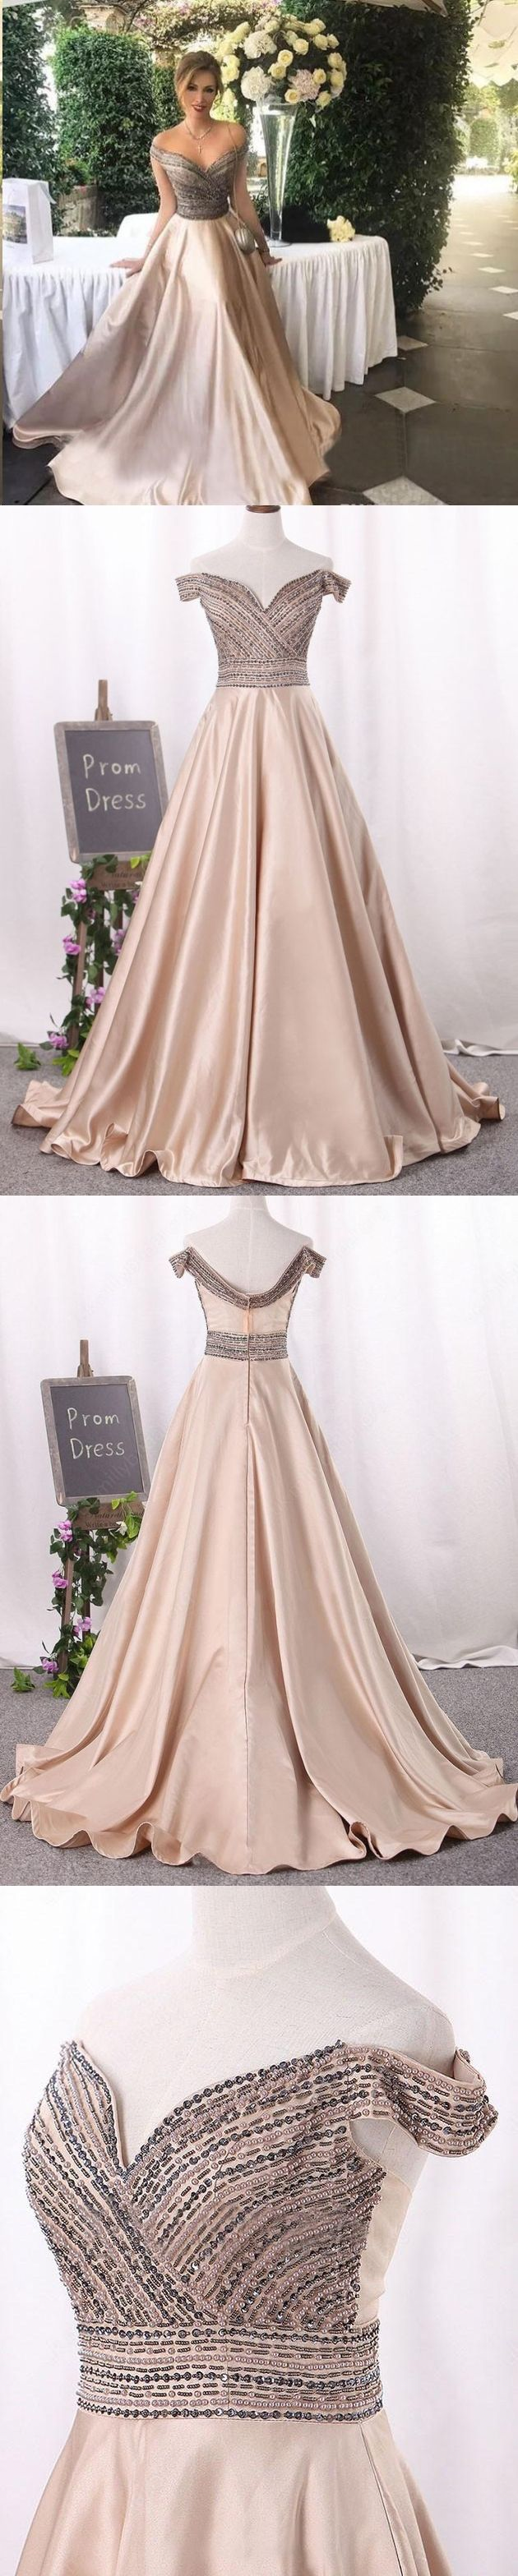 Long prom dresses offtheshoulder floorlength satin sexy prom